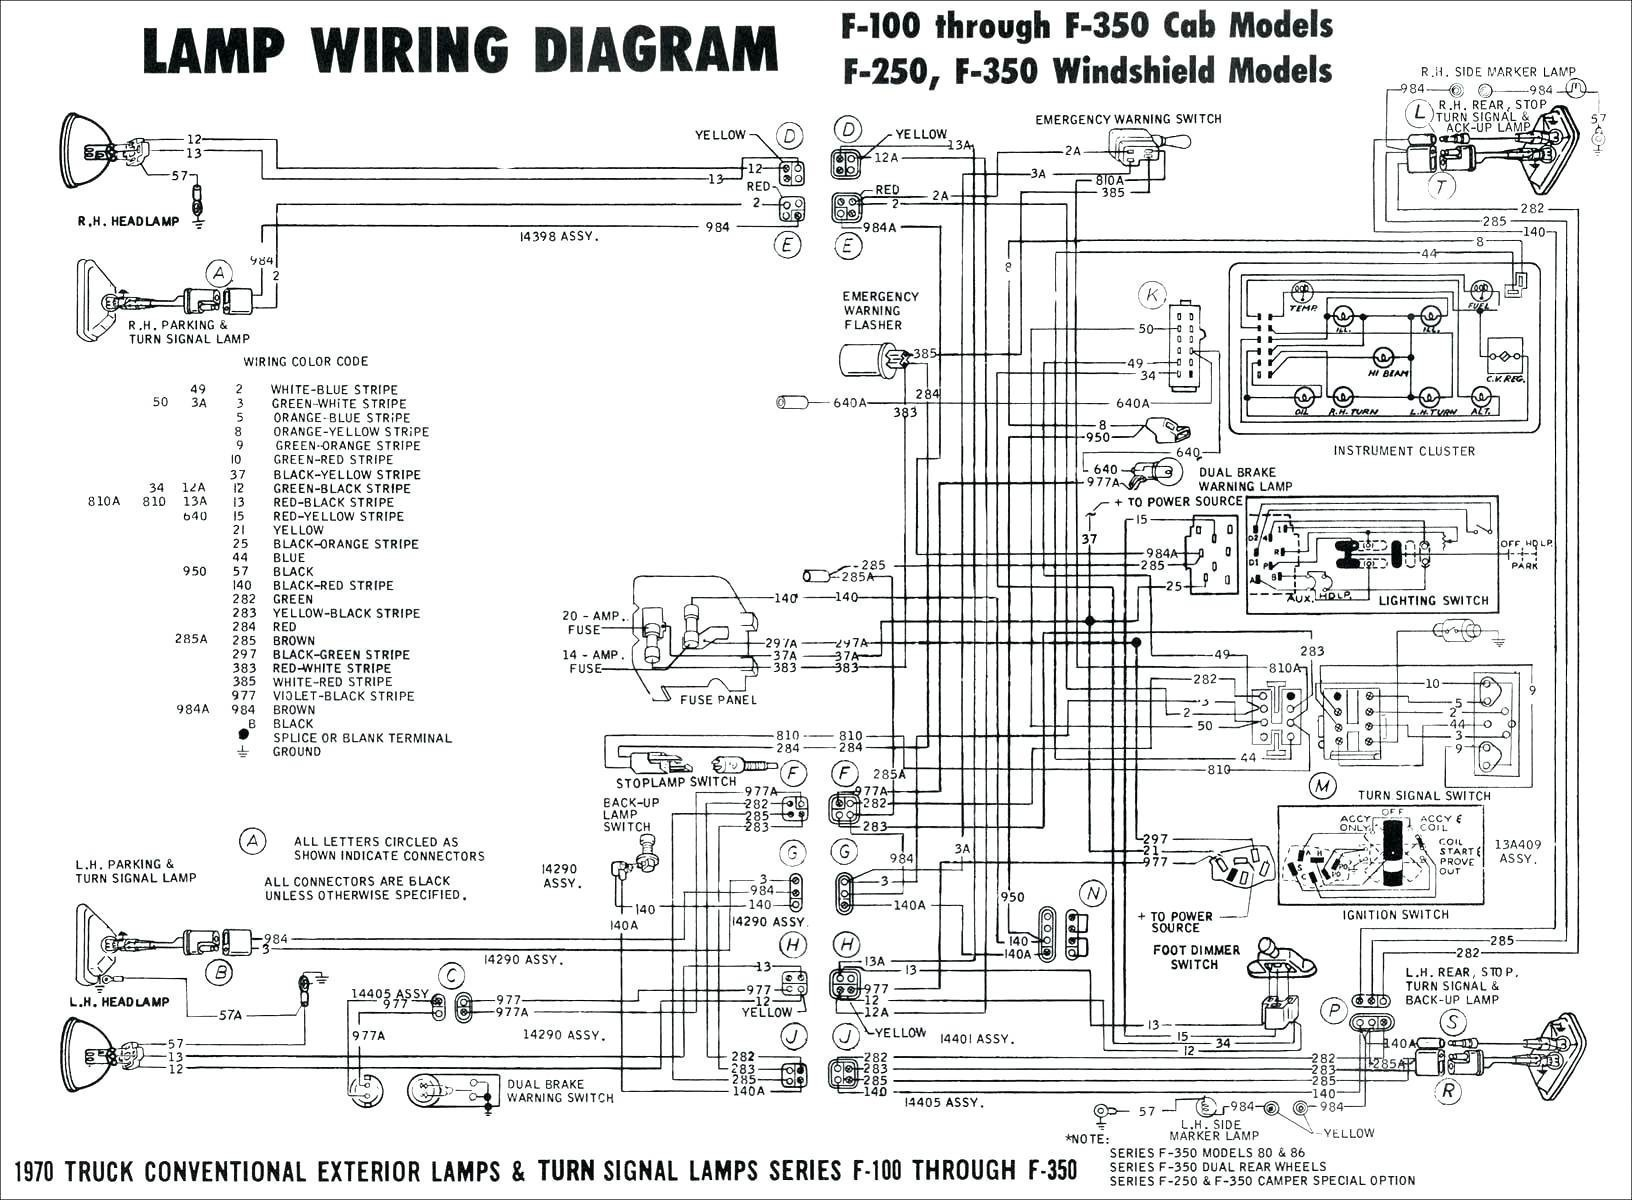 Coil Ignition System Diagram Wiring Diagram the Ignition System Refrence Basic Ignition System Of Coil Ignition System Diagram E36 Ignition Switch Wiring Diagram Best Wiring Diagram for Ignition